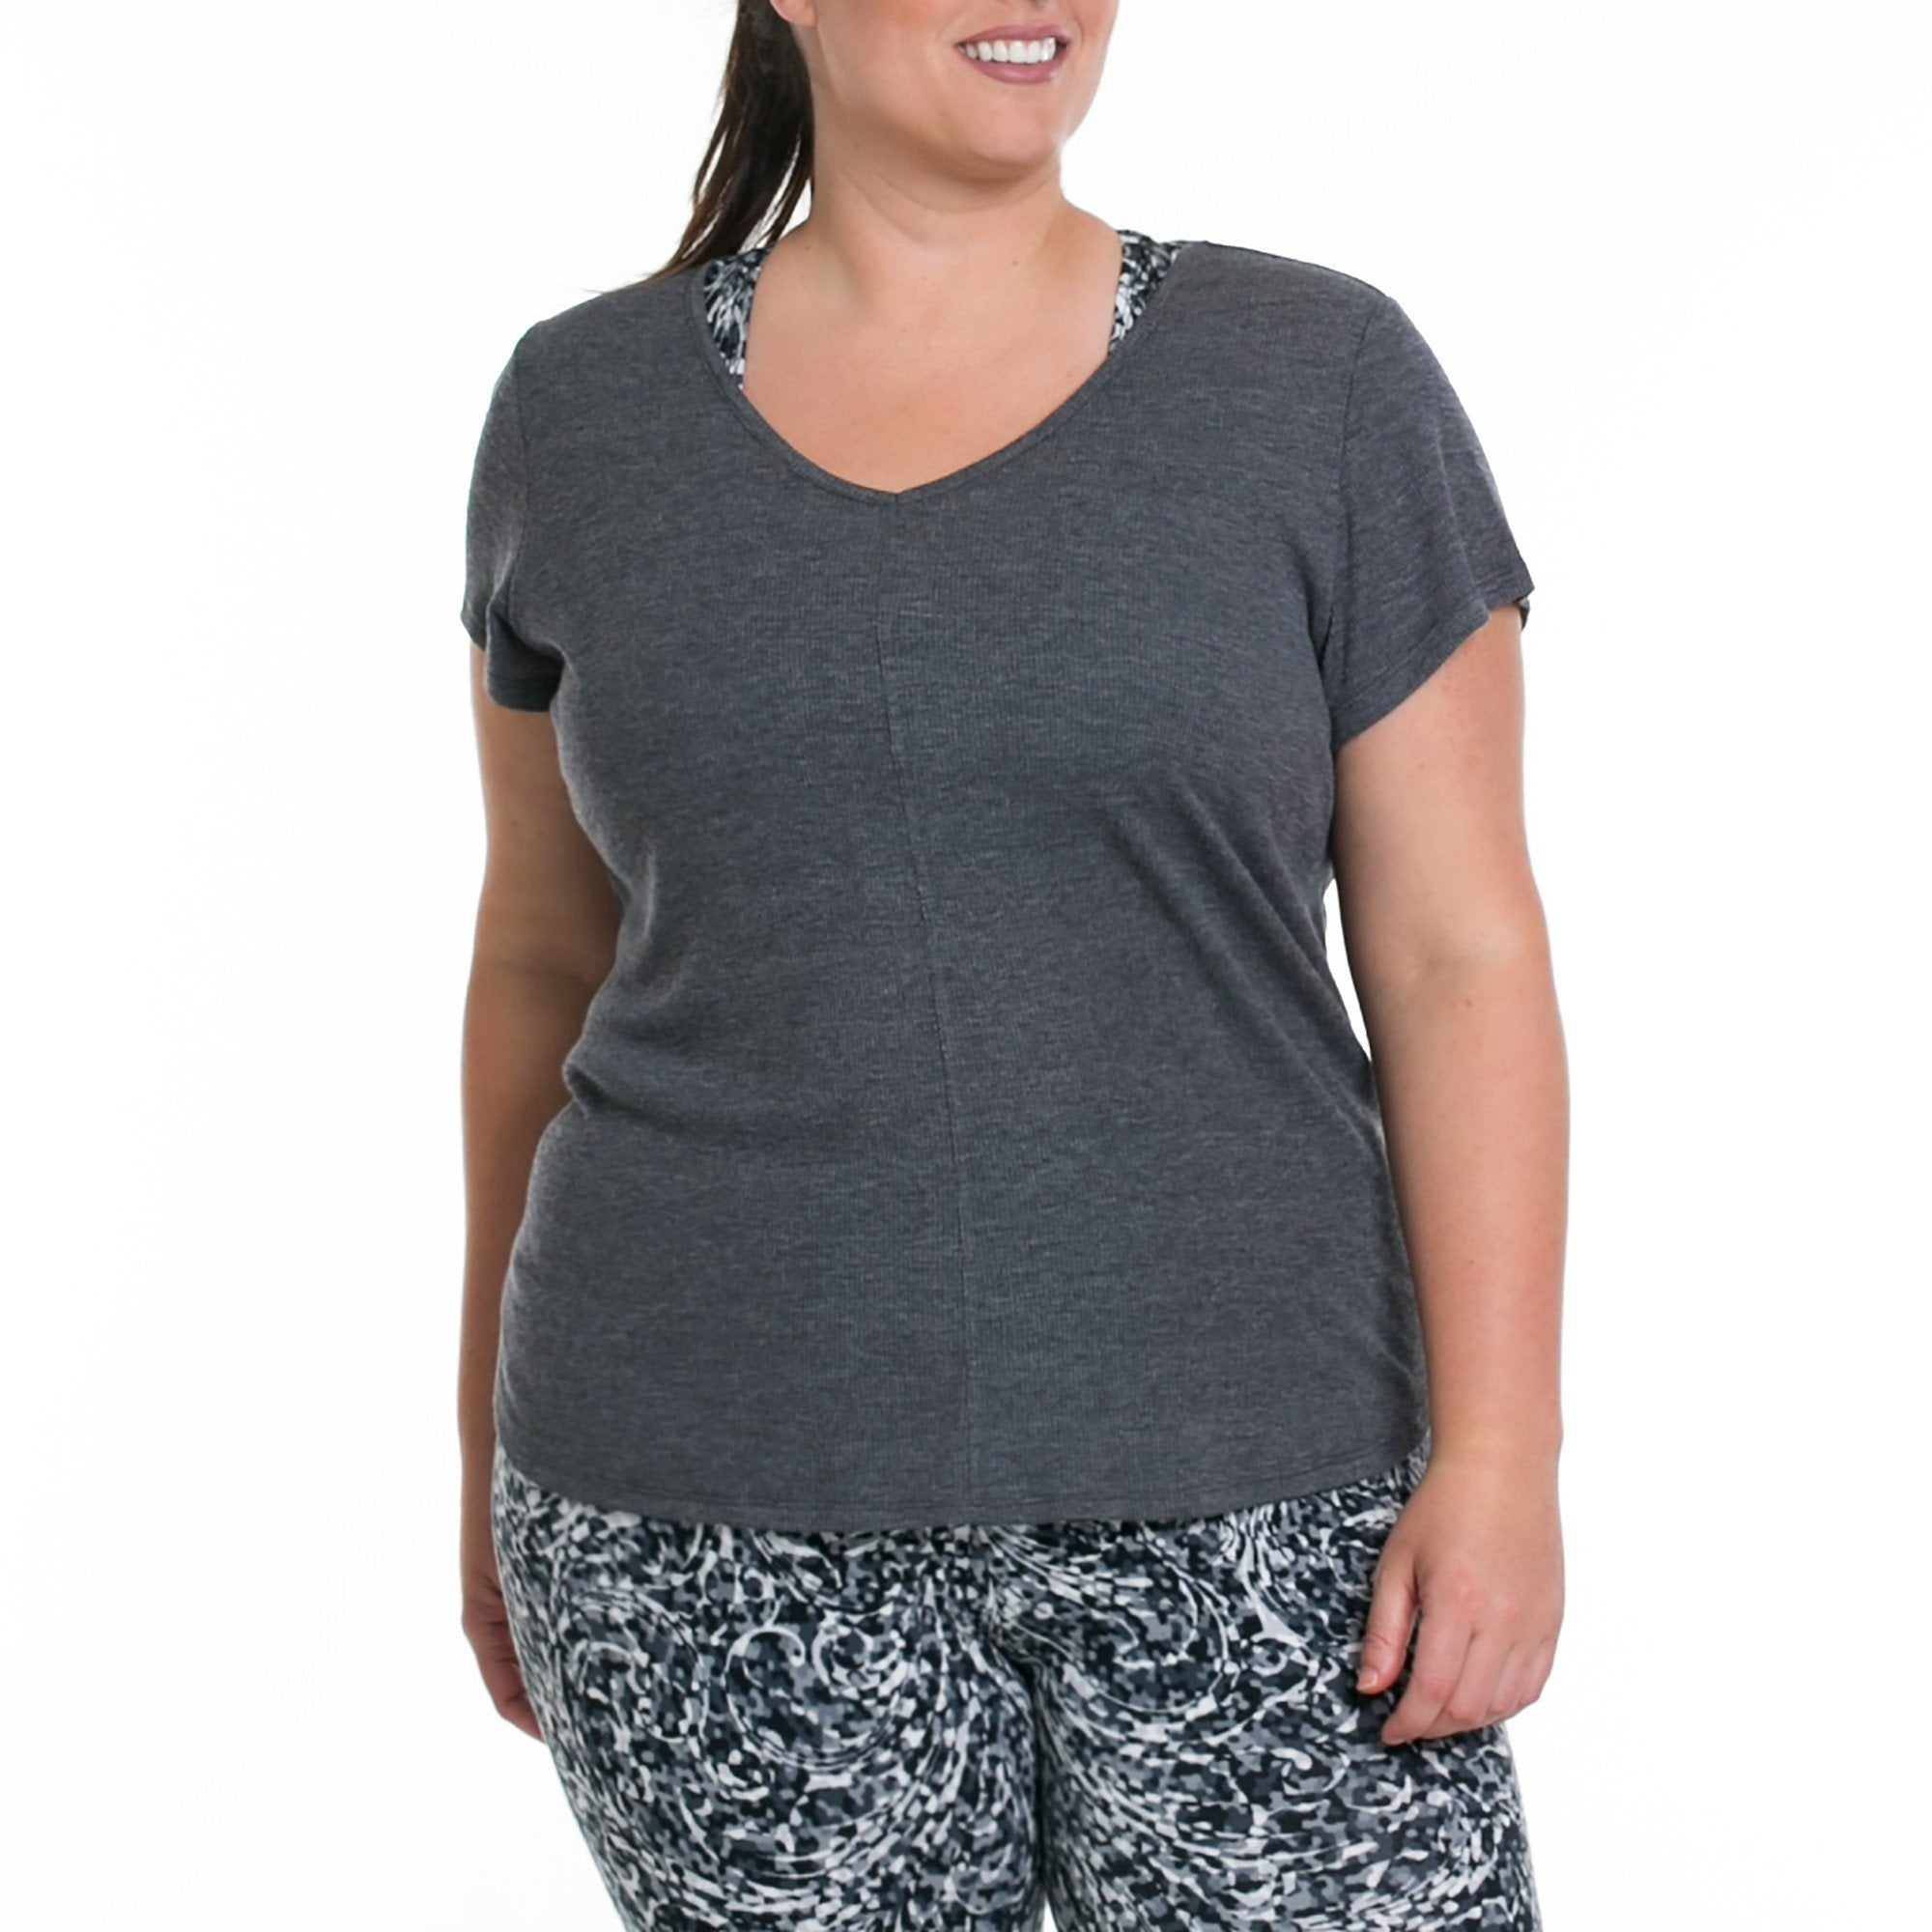 Vanessa Tee - Rainbeau Curves, 14/16 / Dark Heather Grey, activewear, athleisure, fitness, workout, gym, performance, womens, ladies, plus size, curvy, full figured, spandex, cotton, polyester - 1